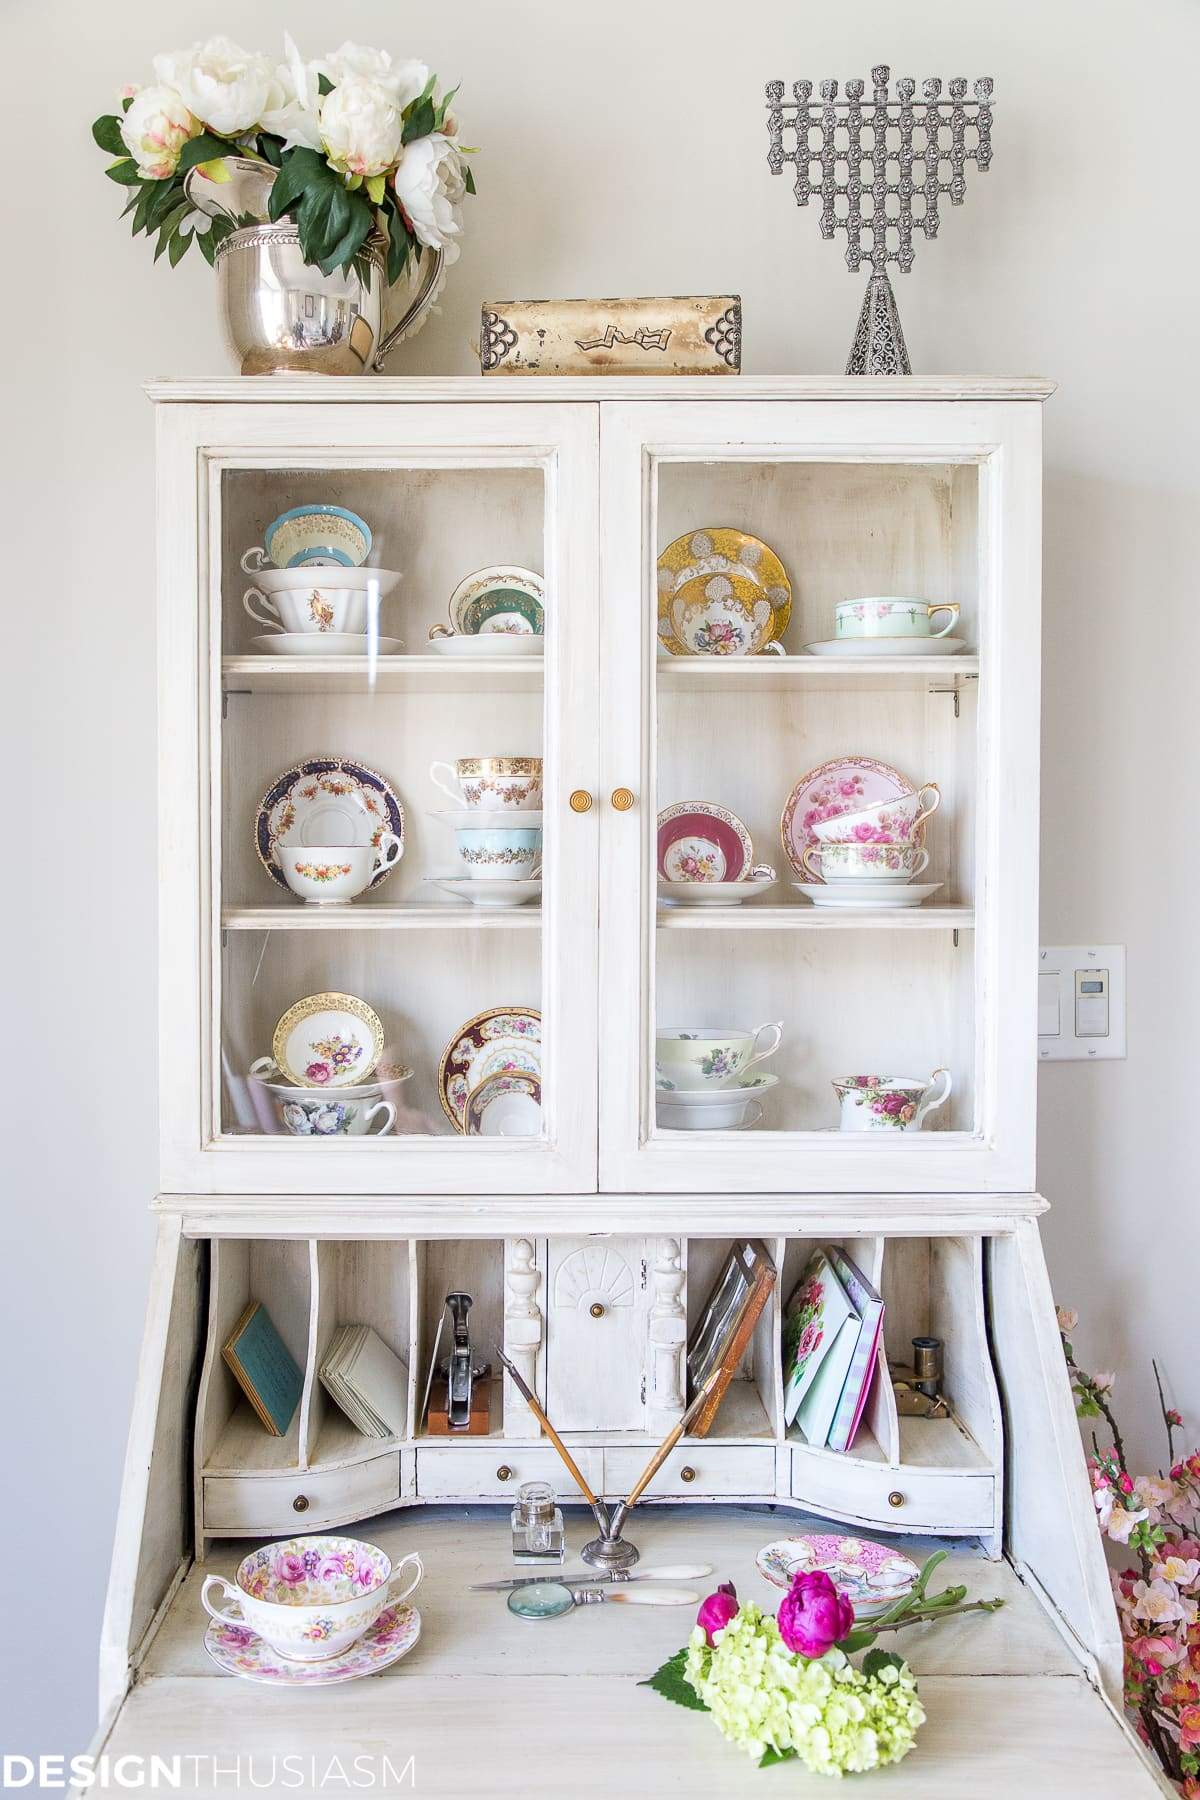 vintage teacups and saucers displayed in an antique cabinet